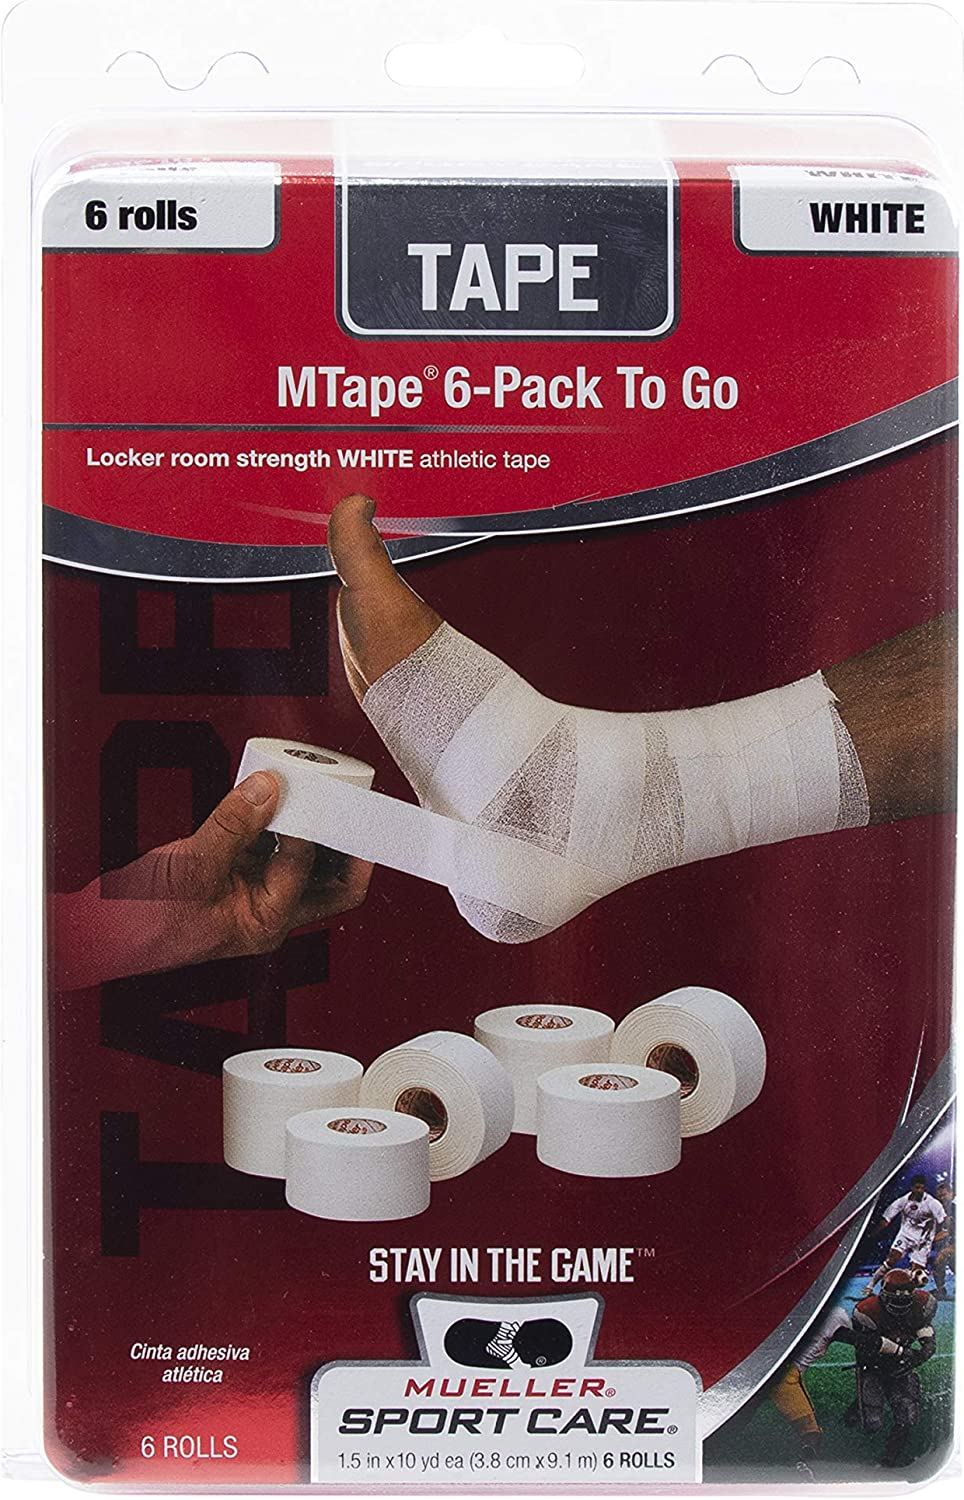 Selling and selling Mueller Low price Athletic Tape 1.5